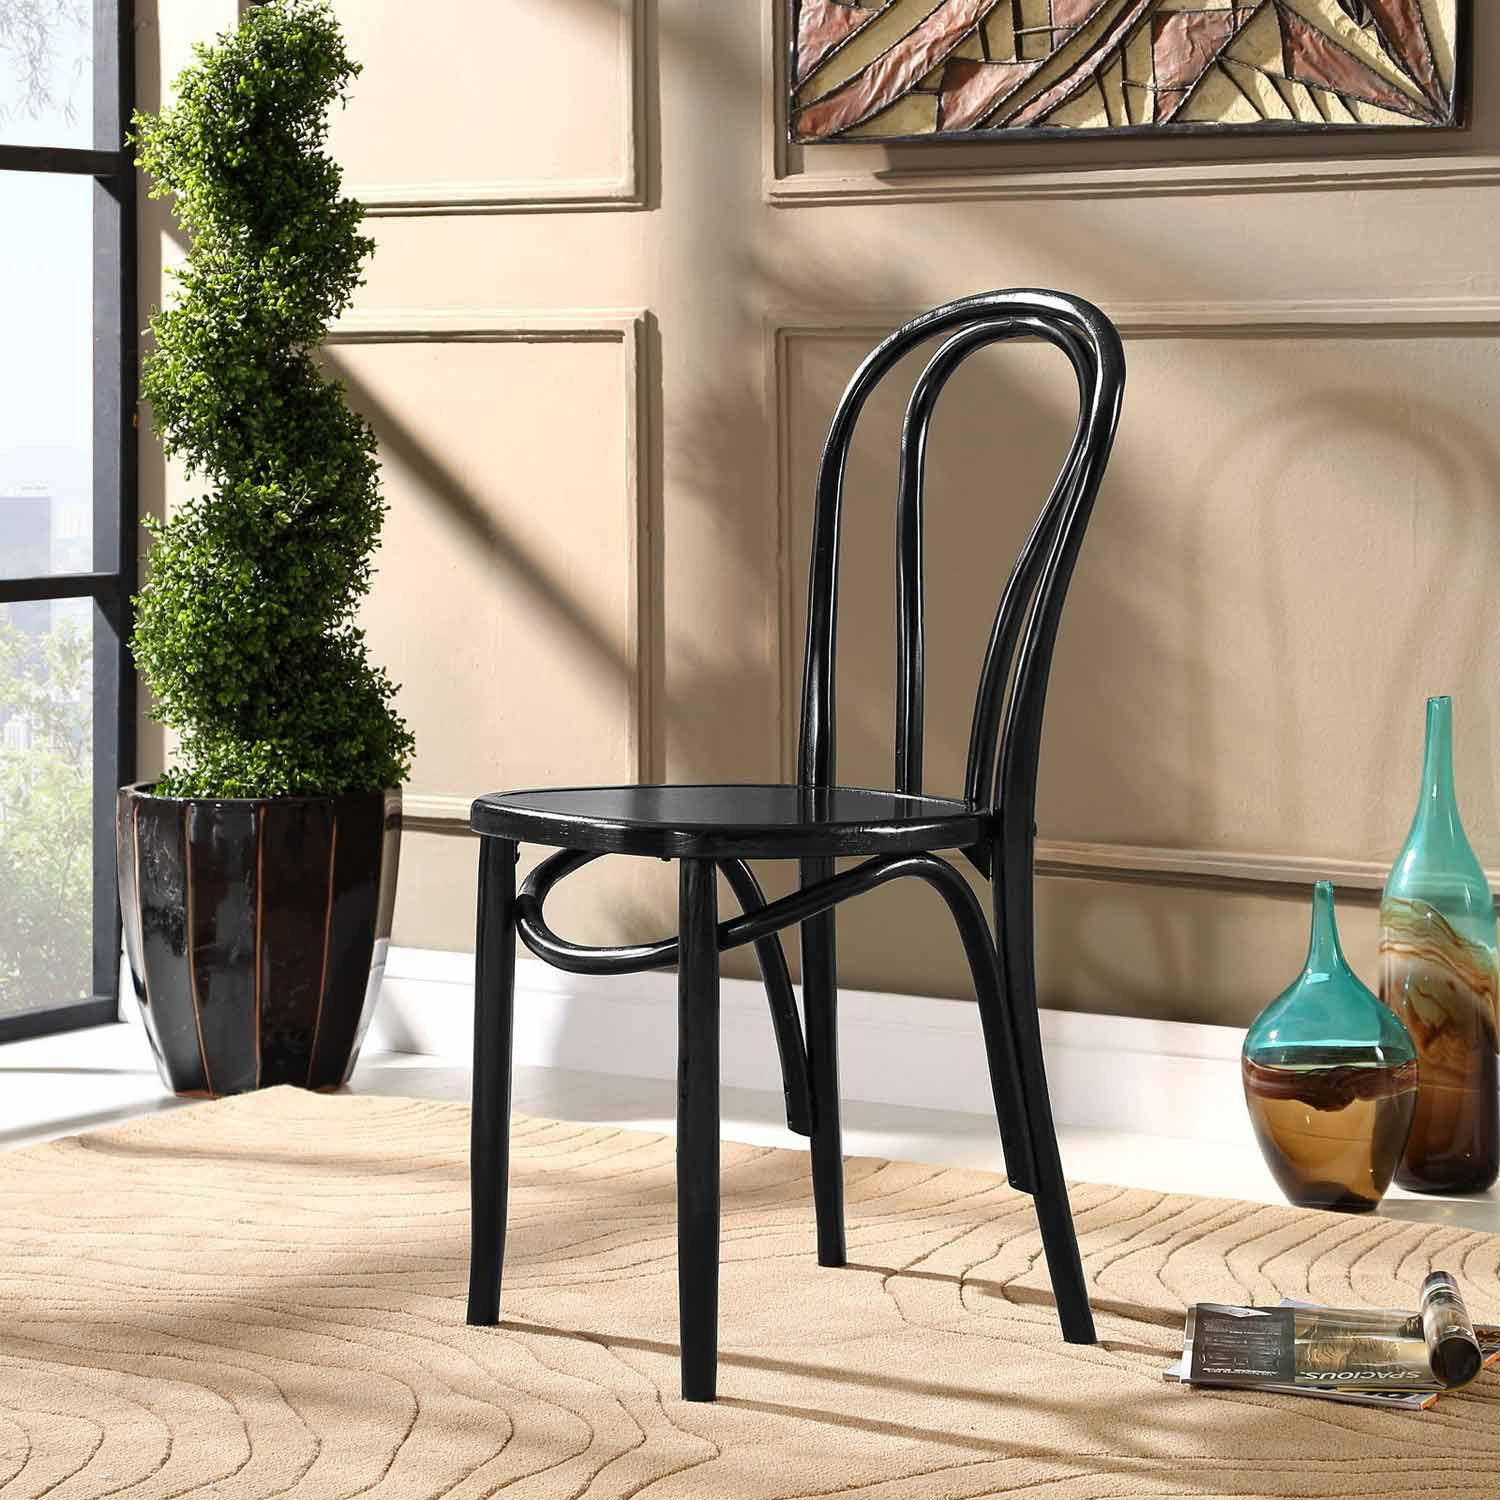 Modway Eon Dining Side Chair - Black